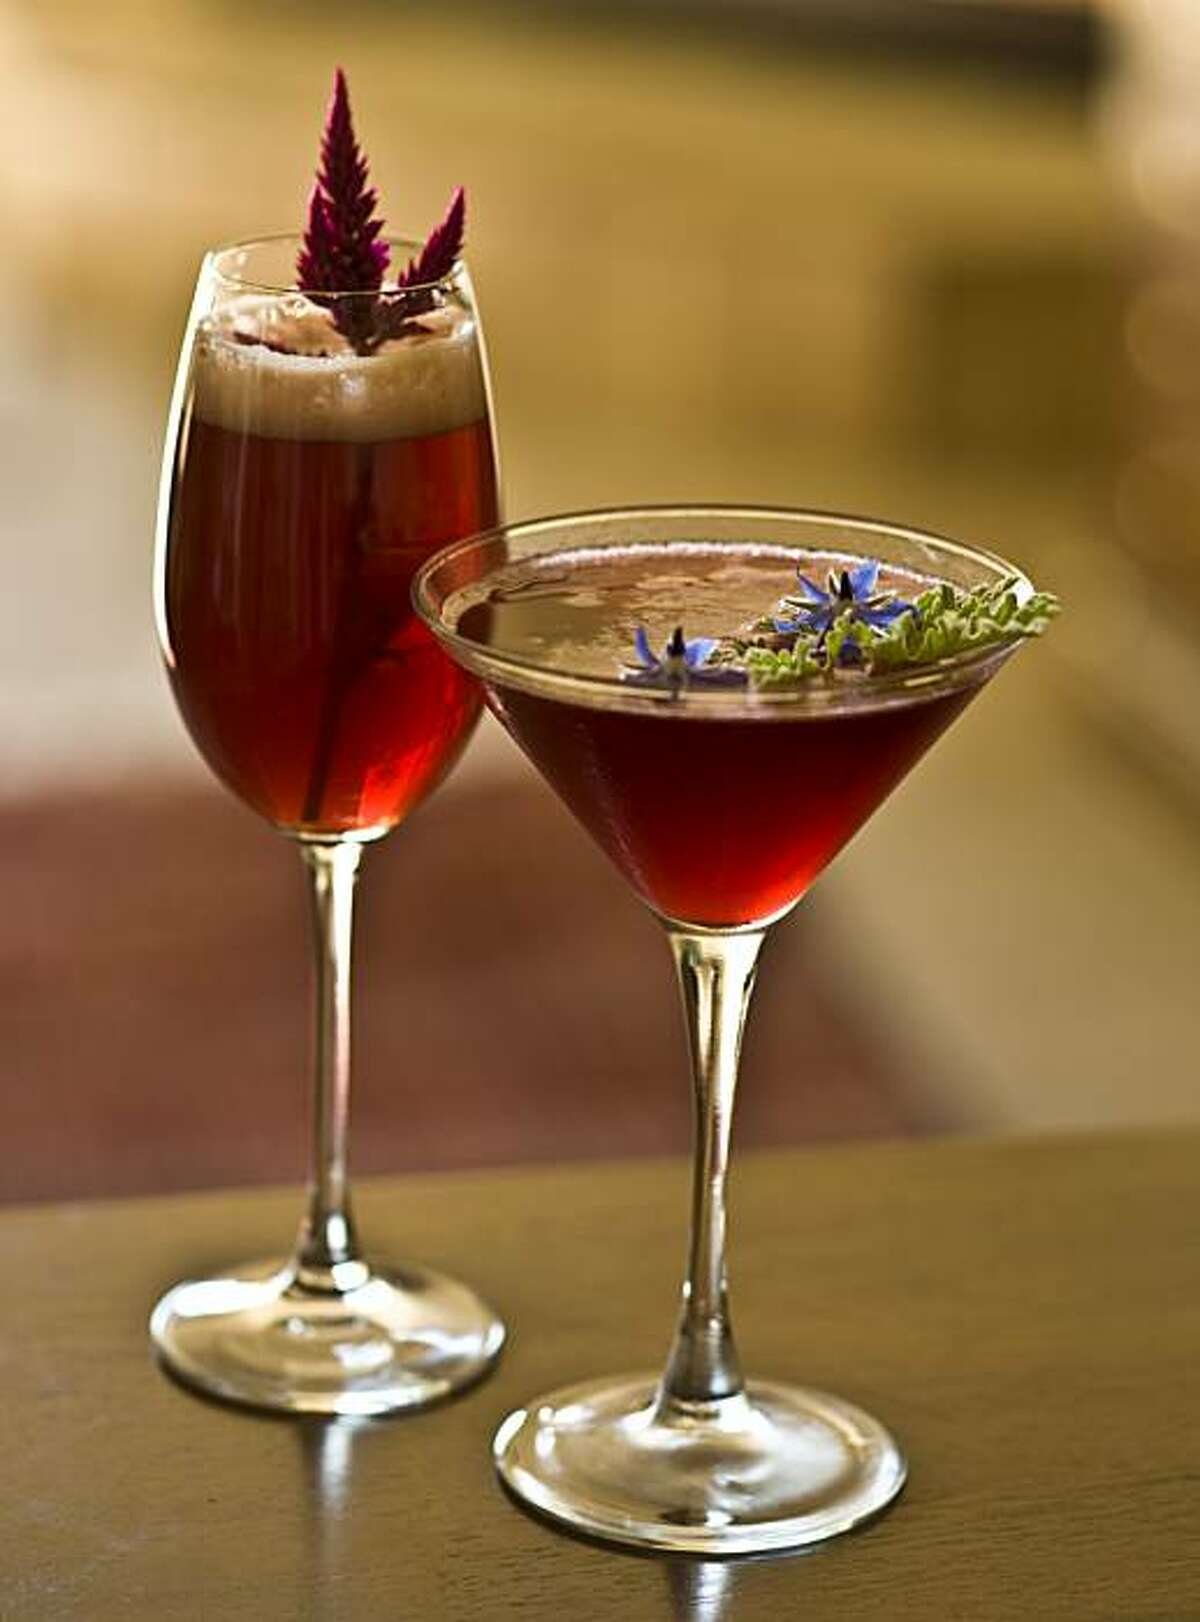 Two cocktail drinks created by Scott Beattie, the Bella Ruffina (left), made with an amaranth spear and the Huck Yu (right), made with scented geranium and borage flower, in Healdsburg, Calif., on September 26, 2008.